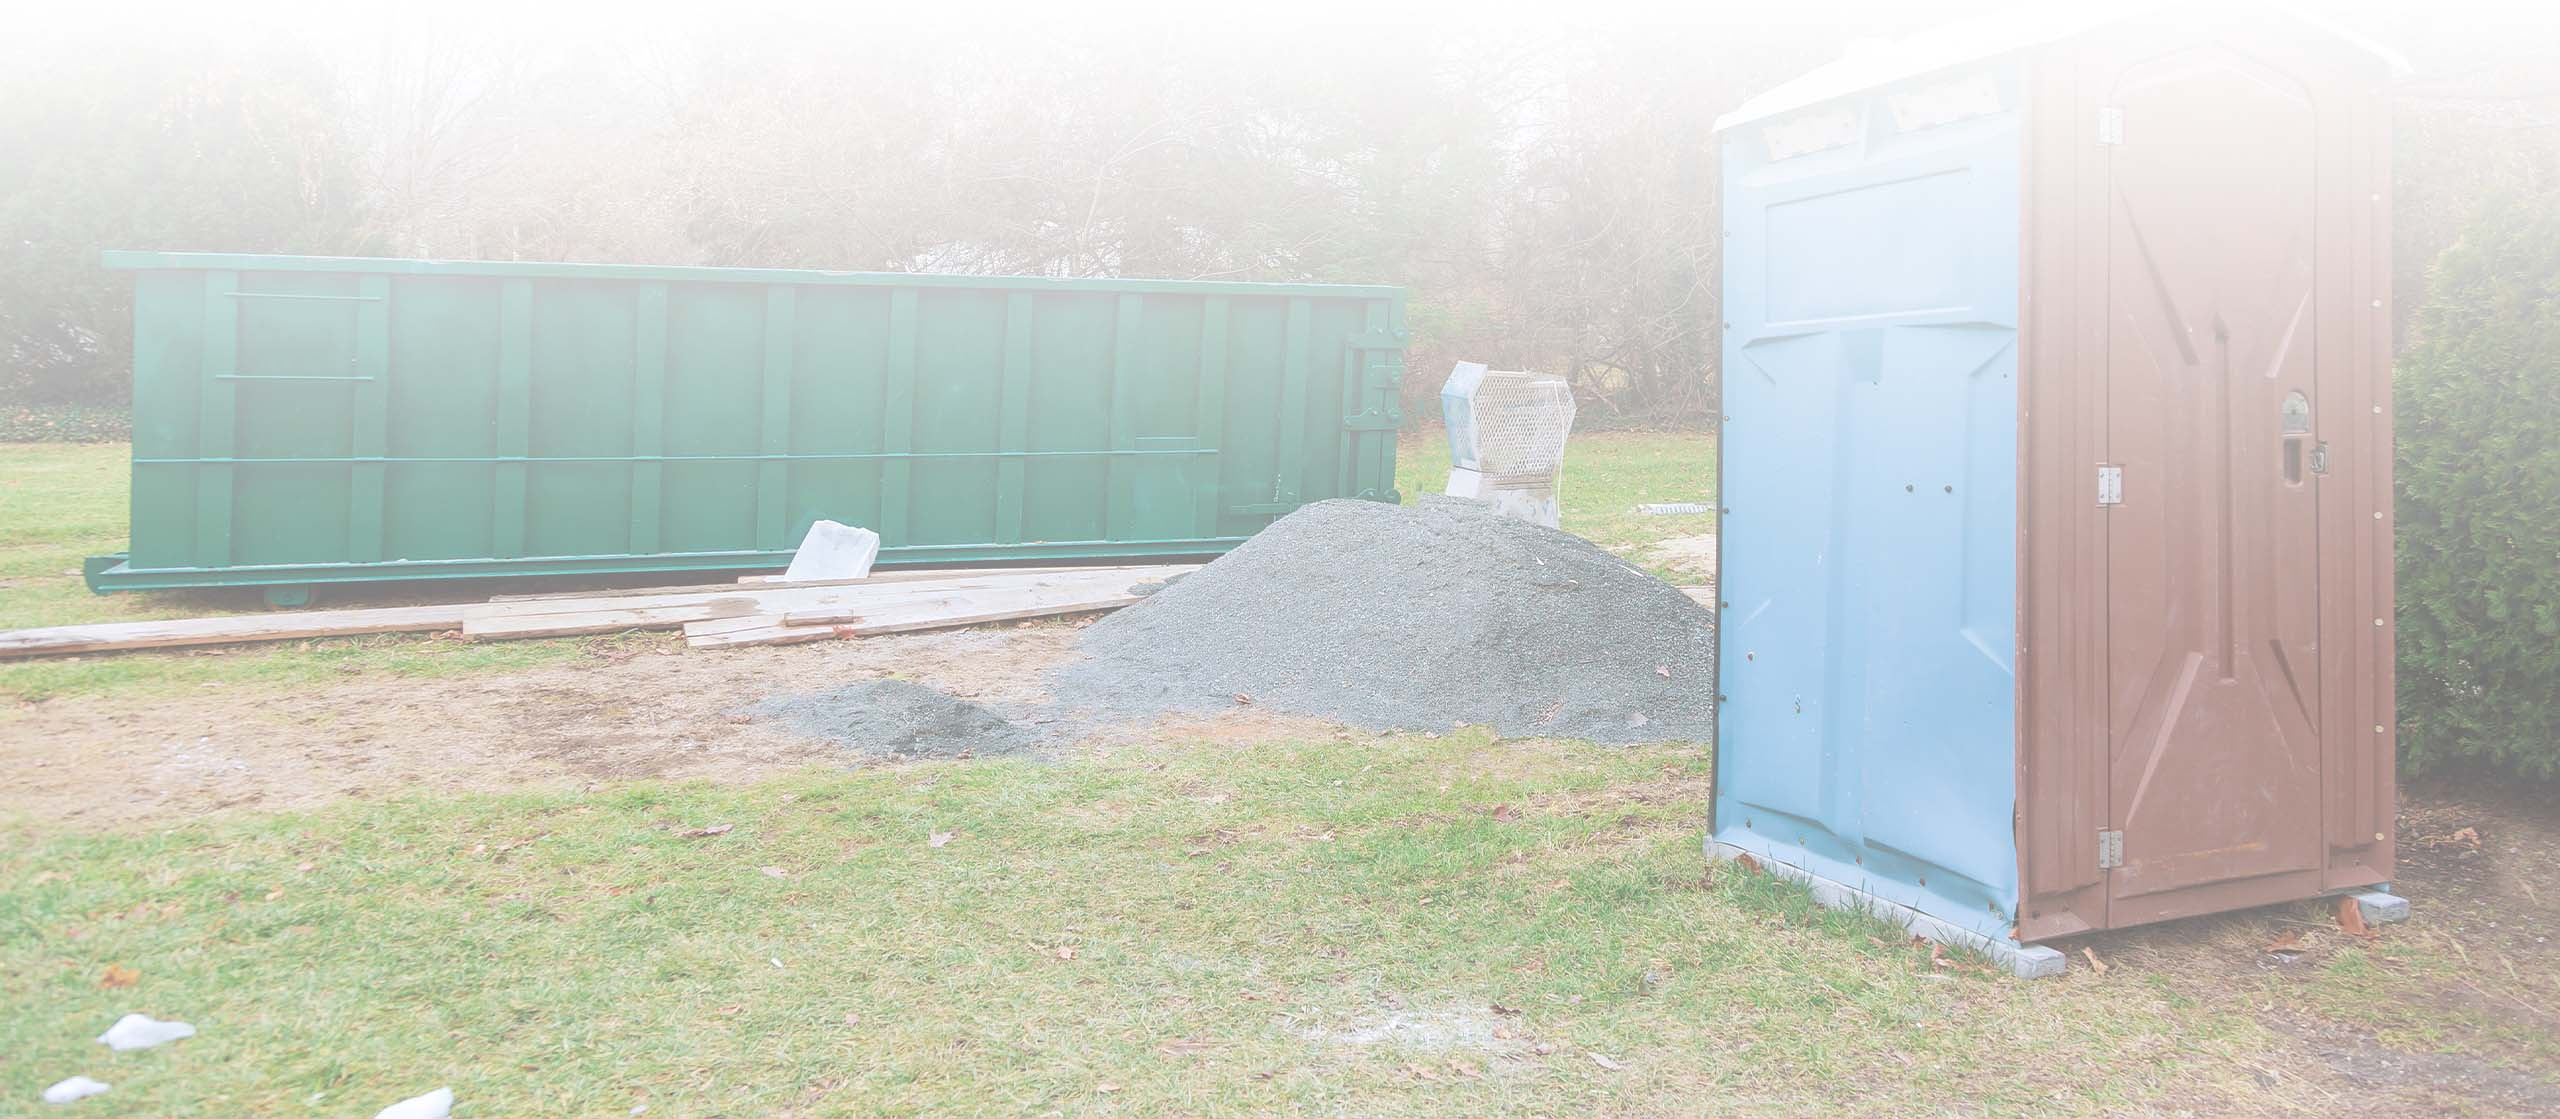 Outdoor work site with green dumpster and portable toilet on ab8waste.com